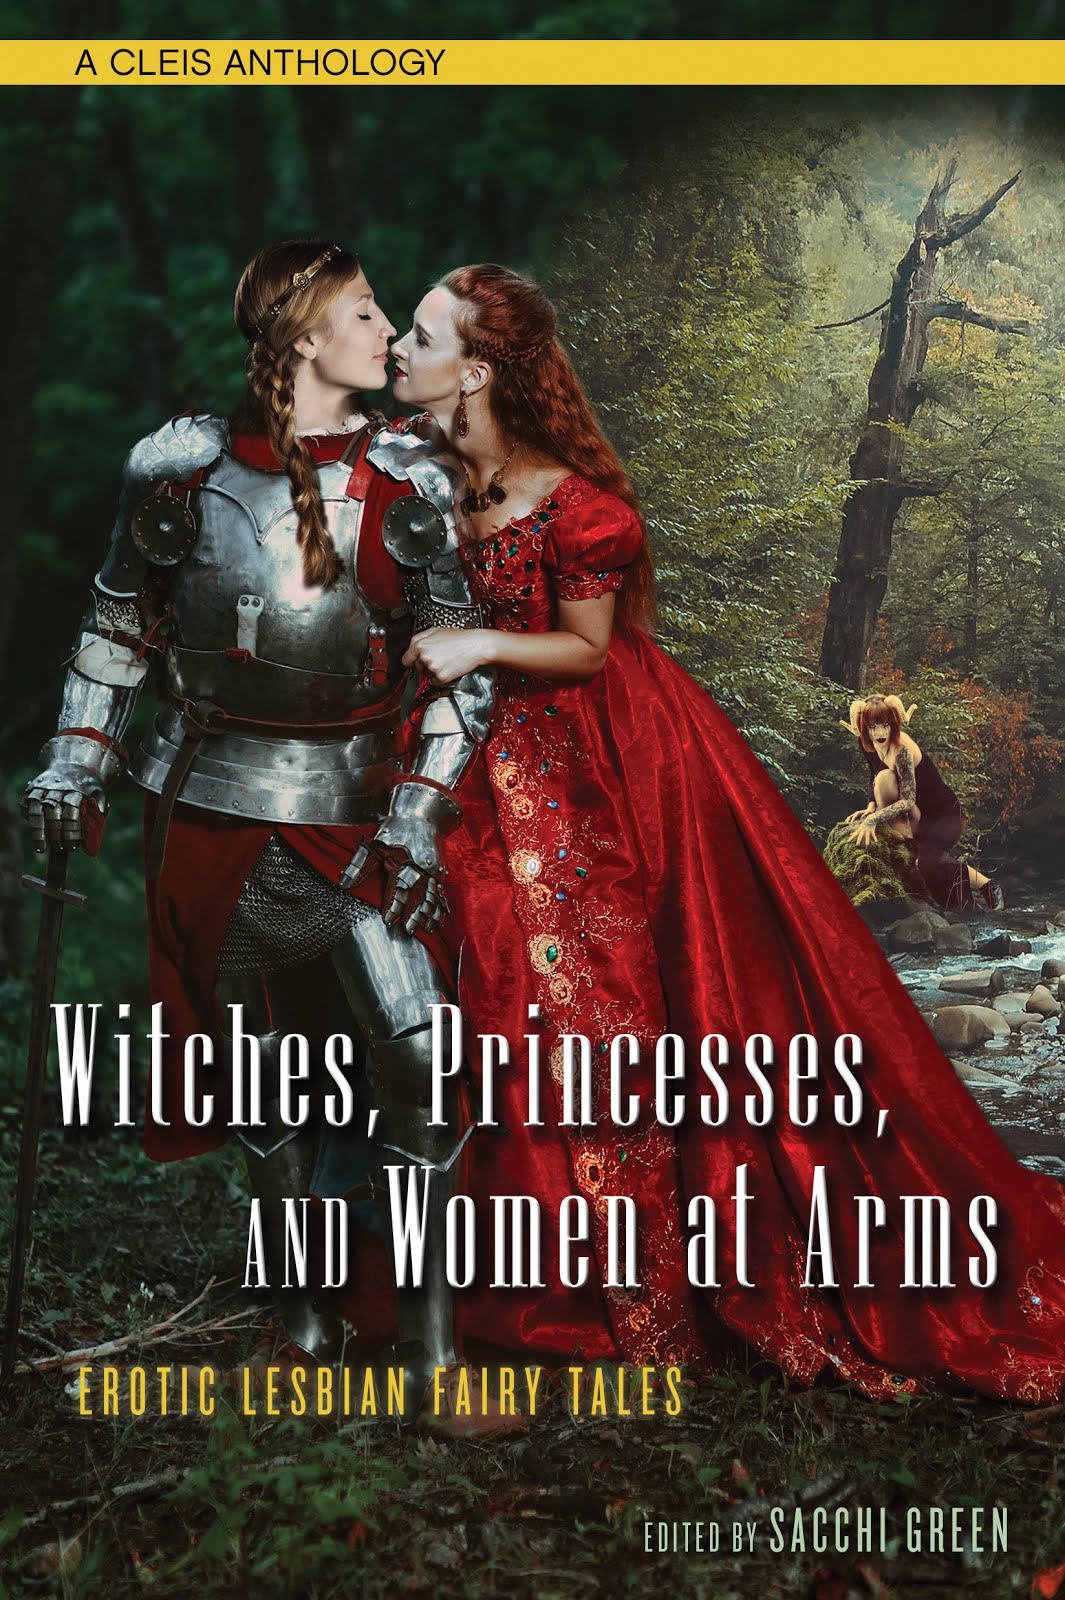 Witches, Princesses and Women at Arms